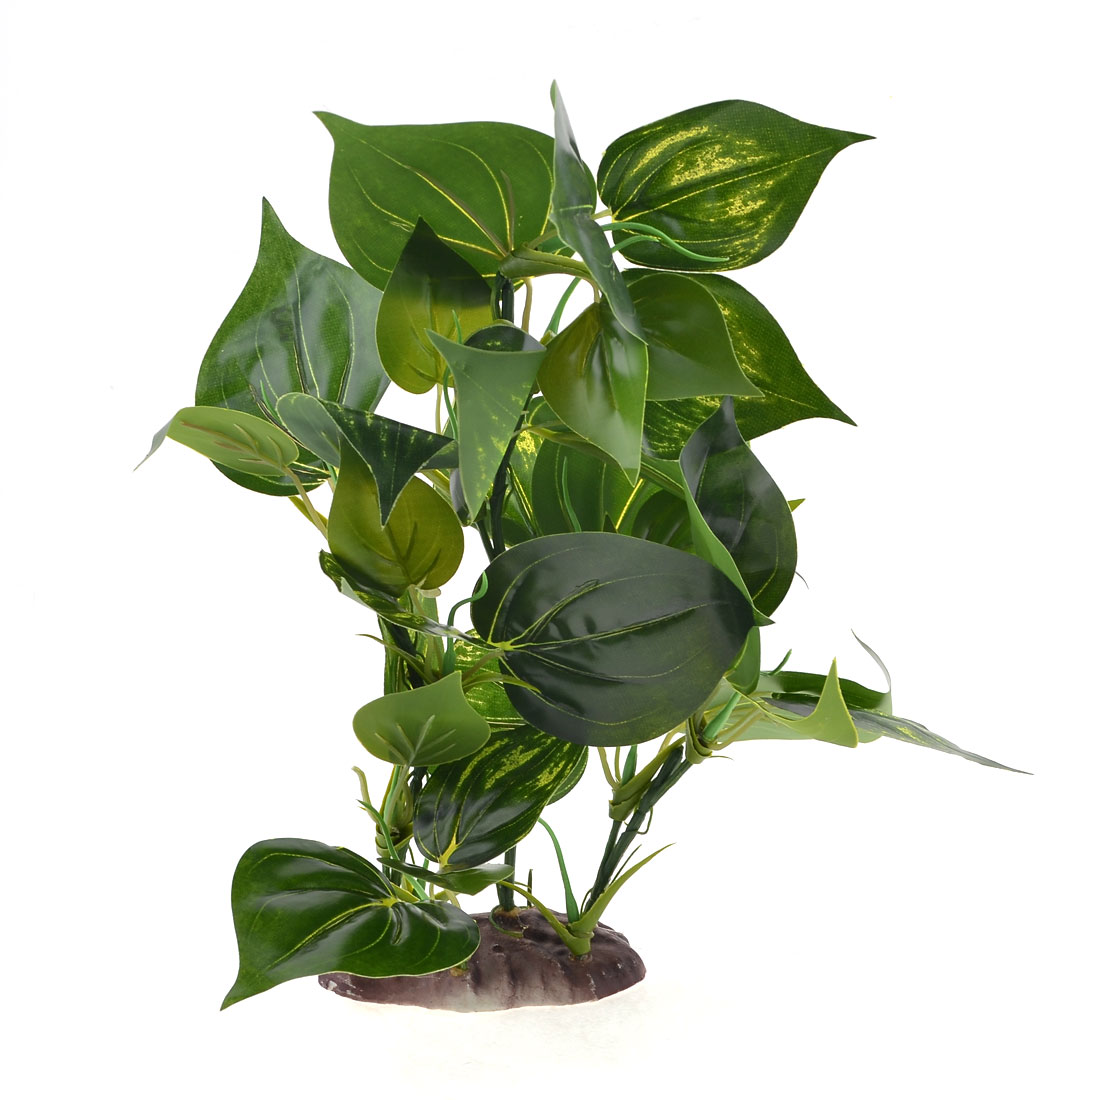 "12.6"" High Green Leaf Artificial Underwater Grass Decor for Fish Tank"